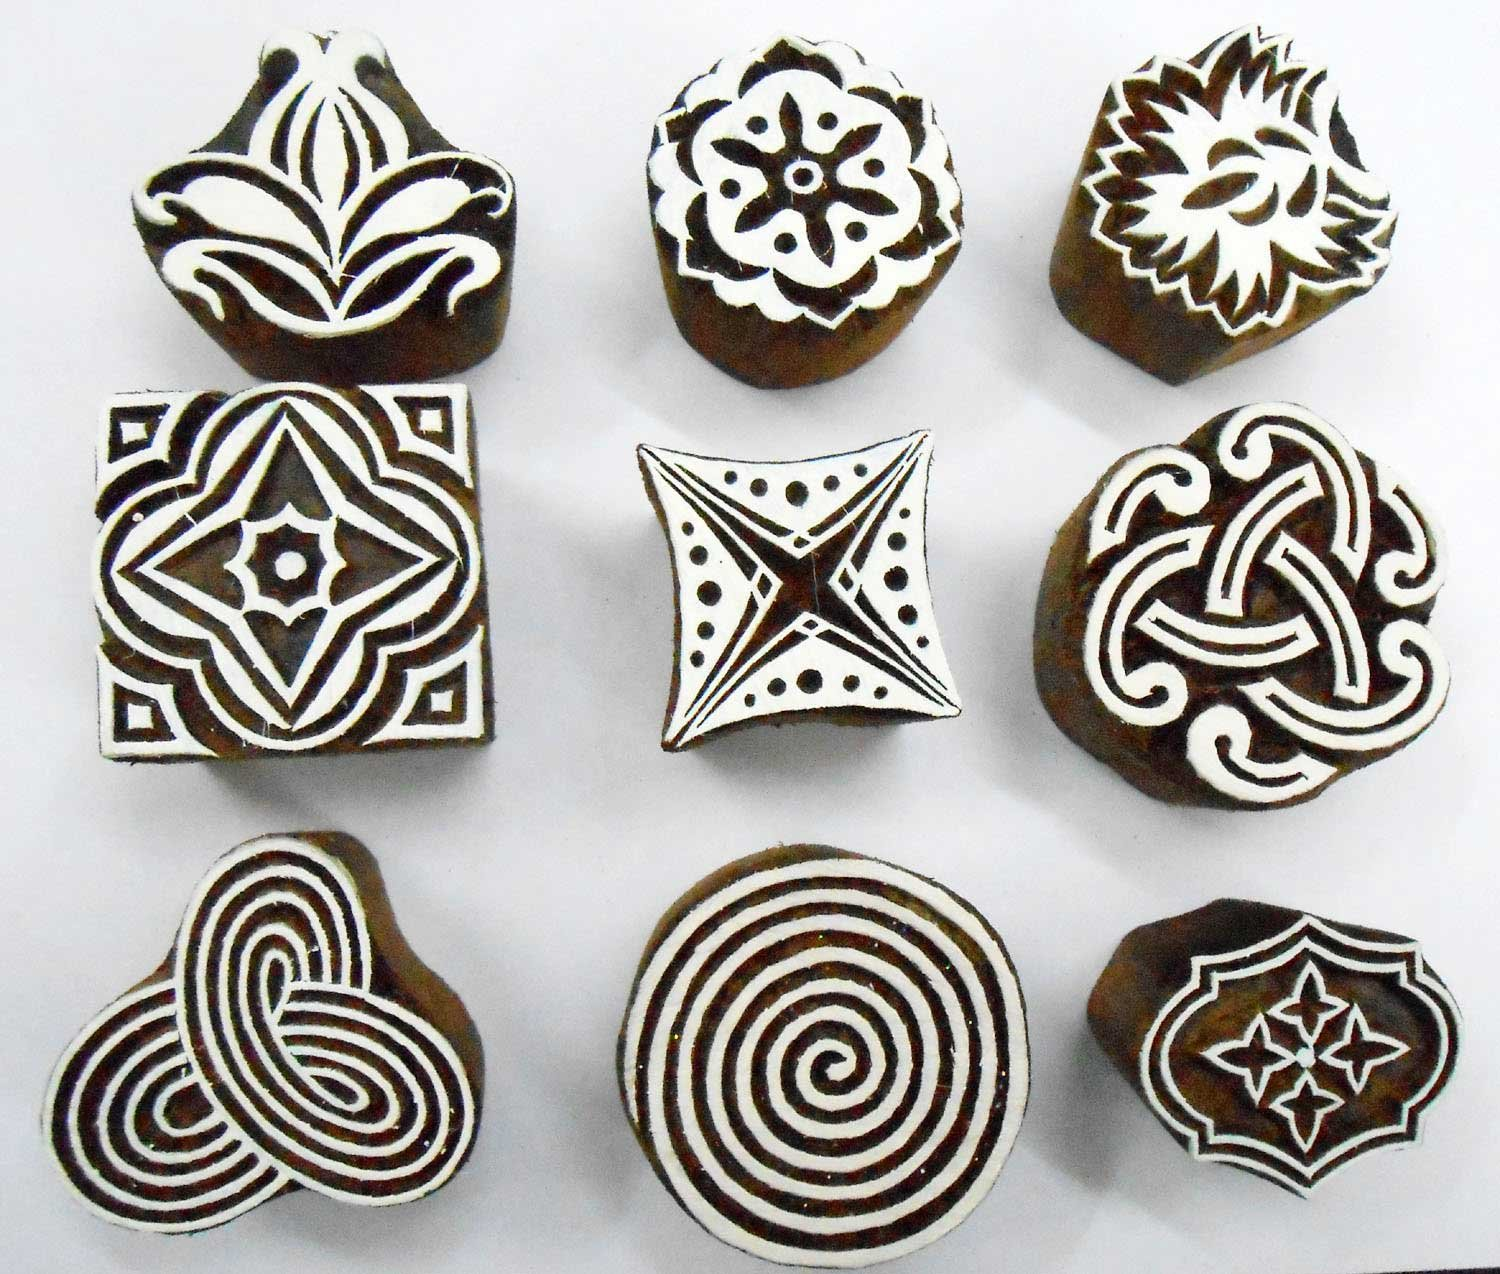 Wholesale Lot of 9 Wooden Block Stamps for Textile Printing/ Scrapbooking/ Henna Tattoo